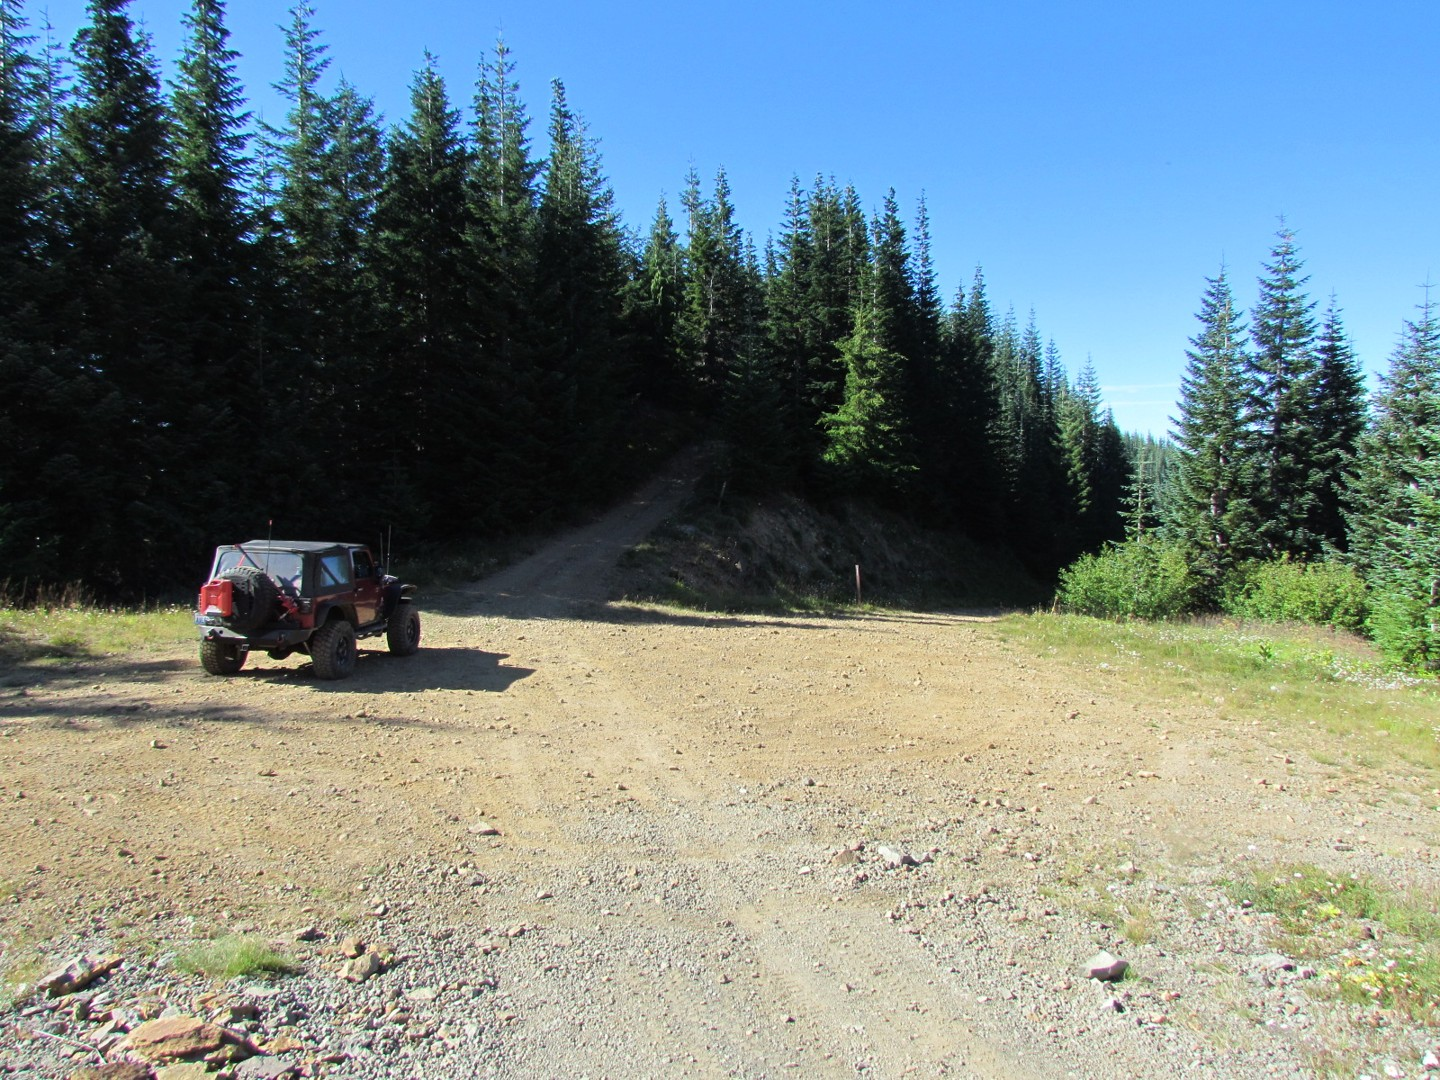 Evans Creek / Trail #519 - Waypoint 5: Trail Intersection / Straight